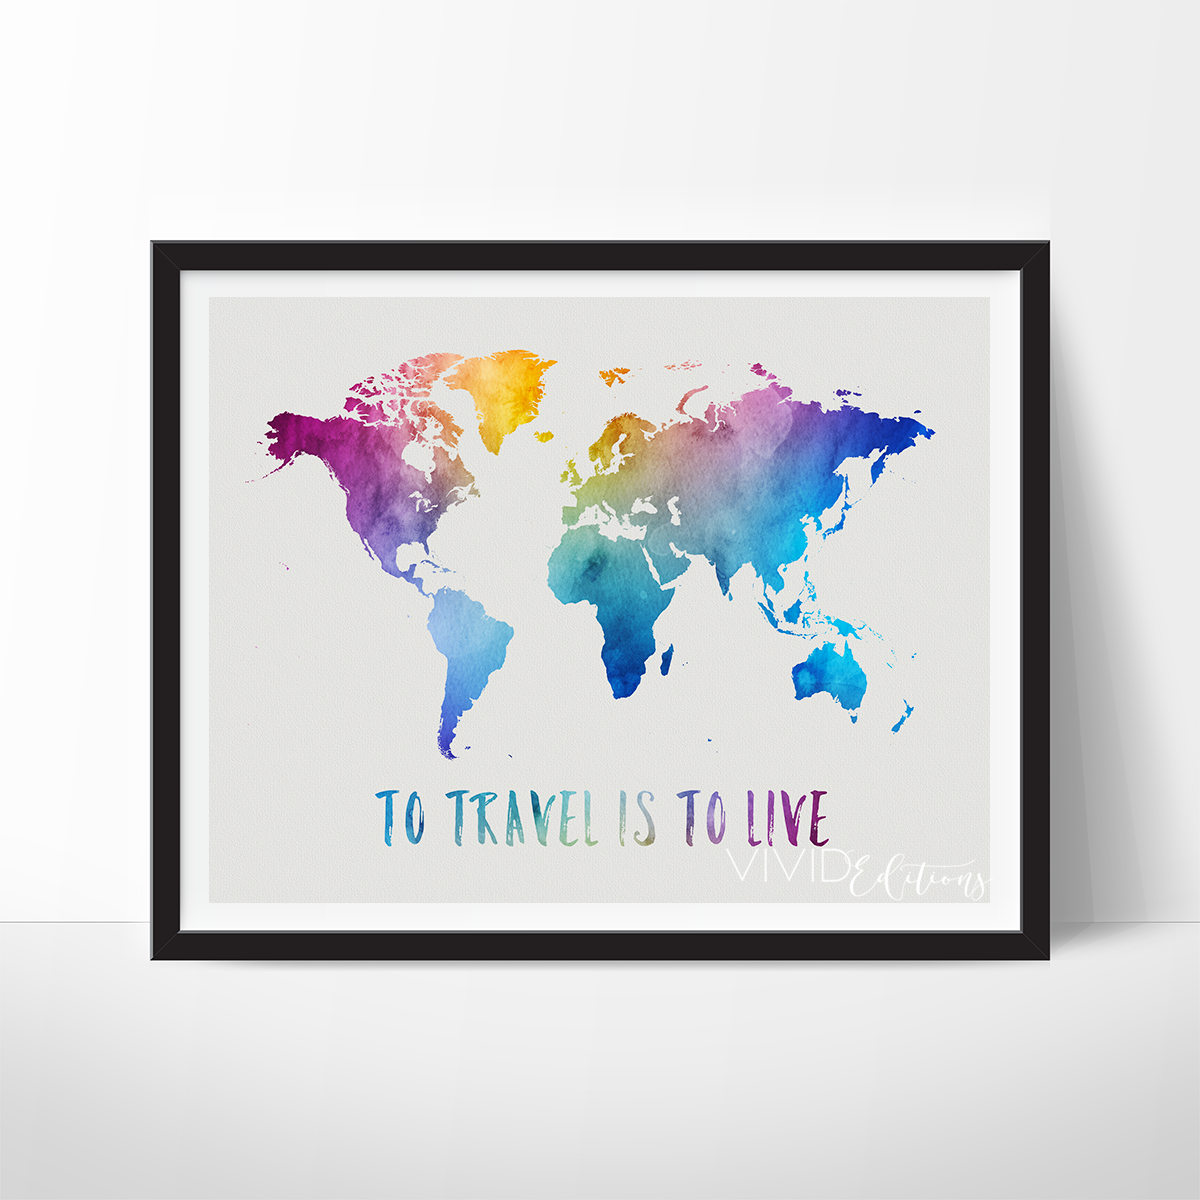 To travel is to live travel quote world map watercolor art print to travel is to live travel quote watercolor world map by vivideditions gumiabroncs Images